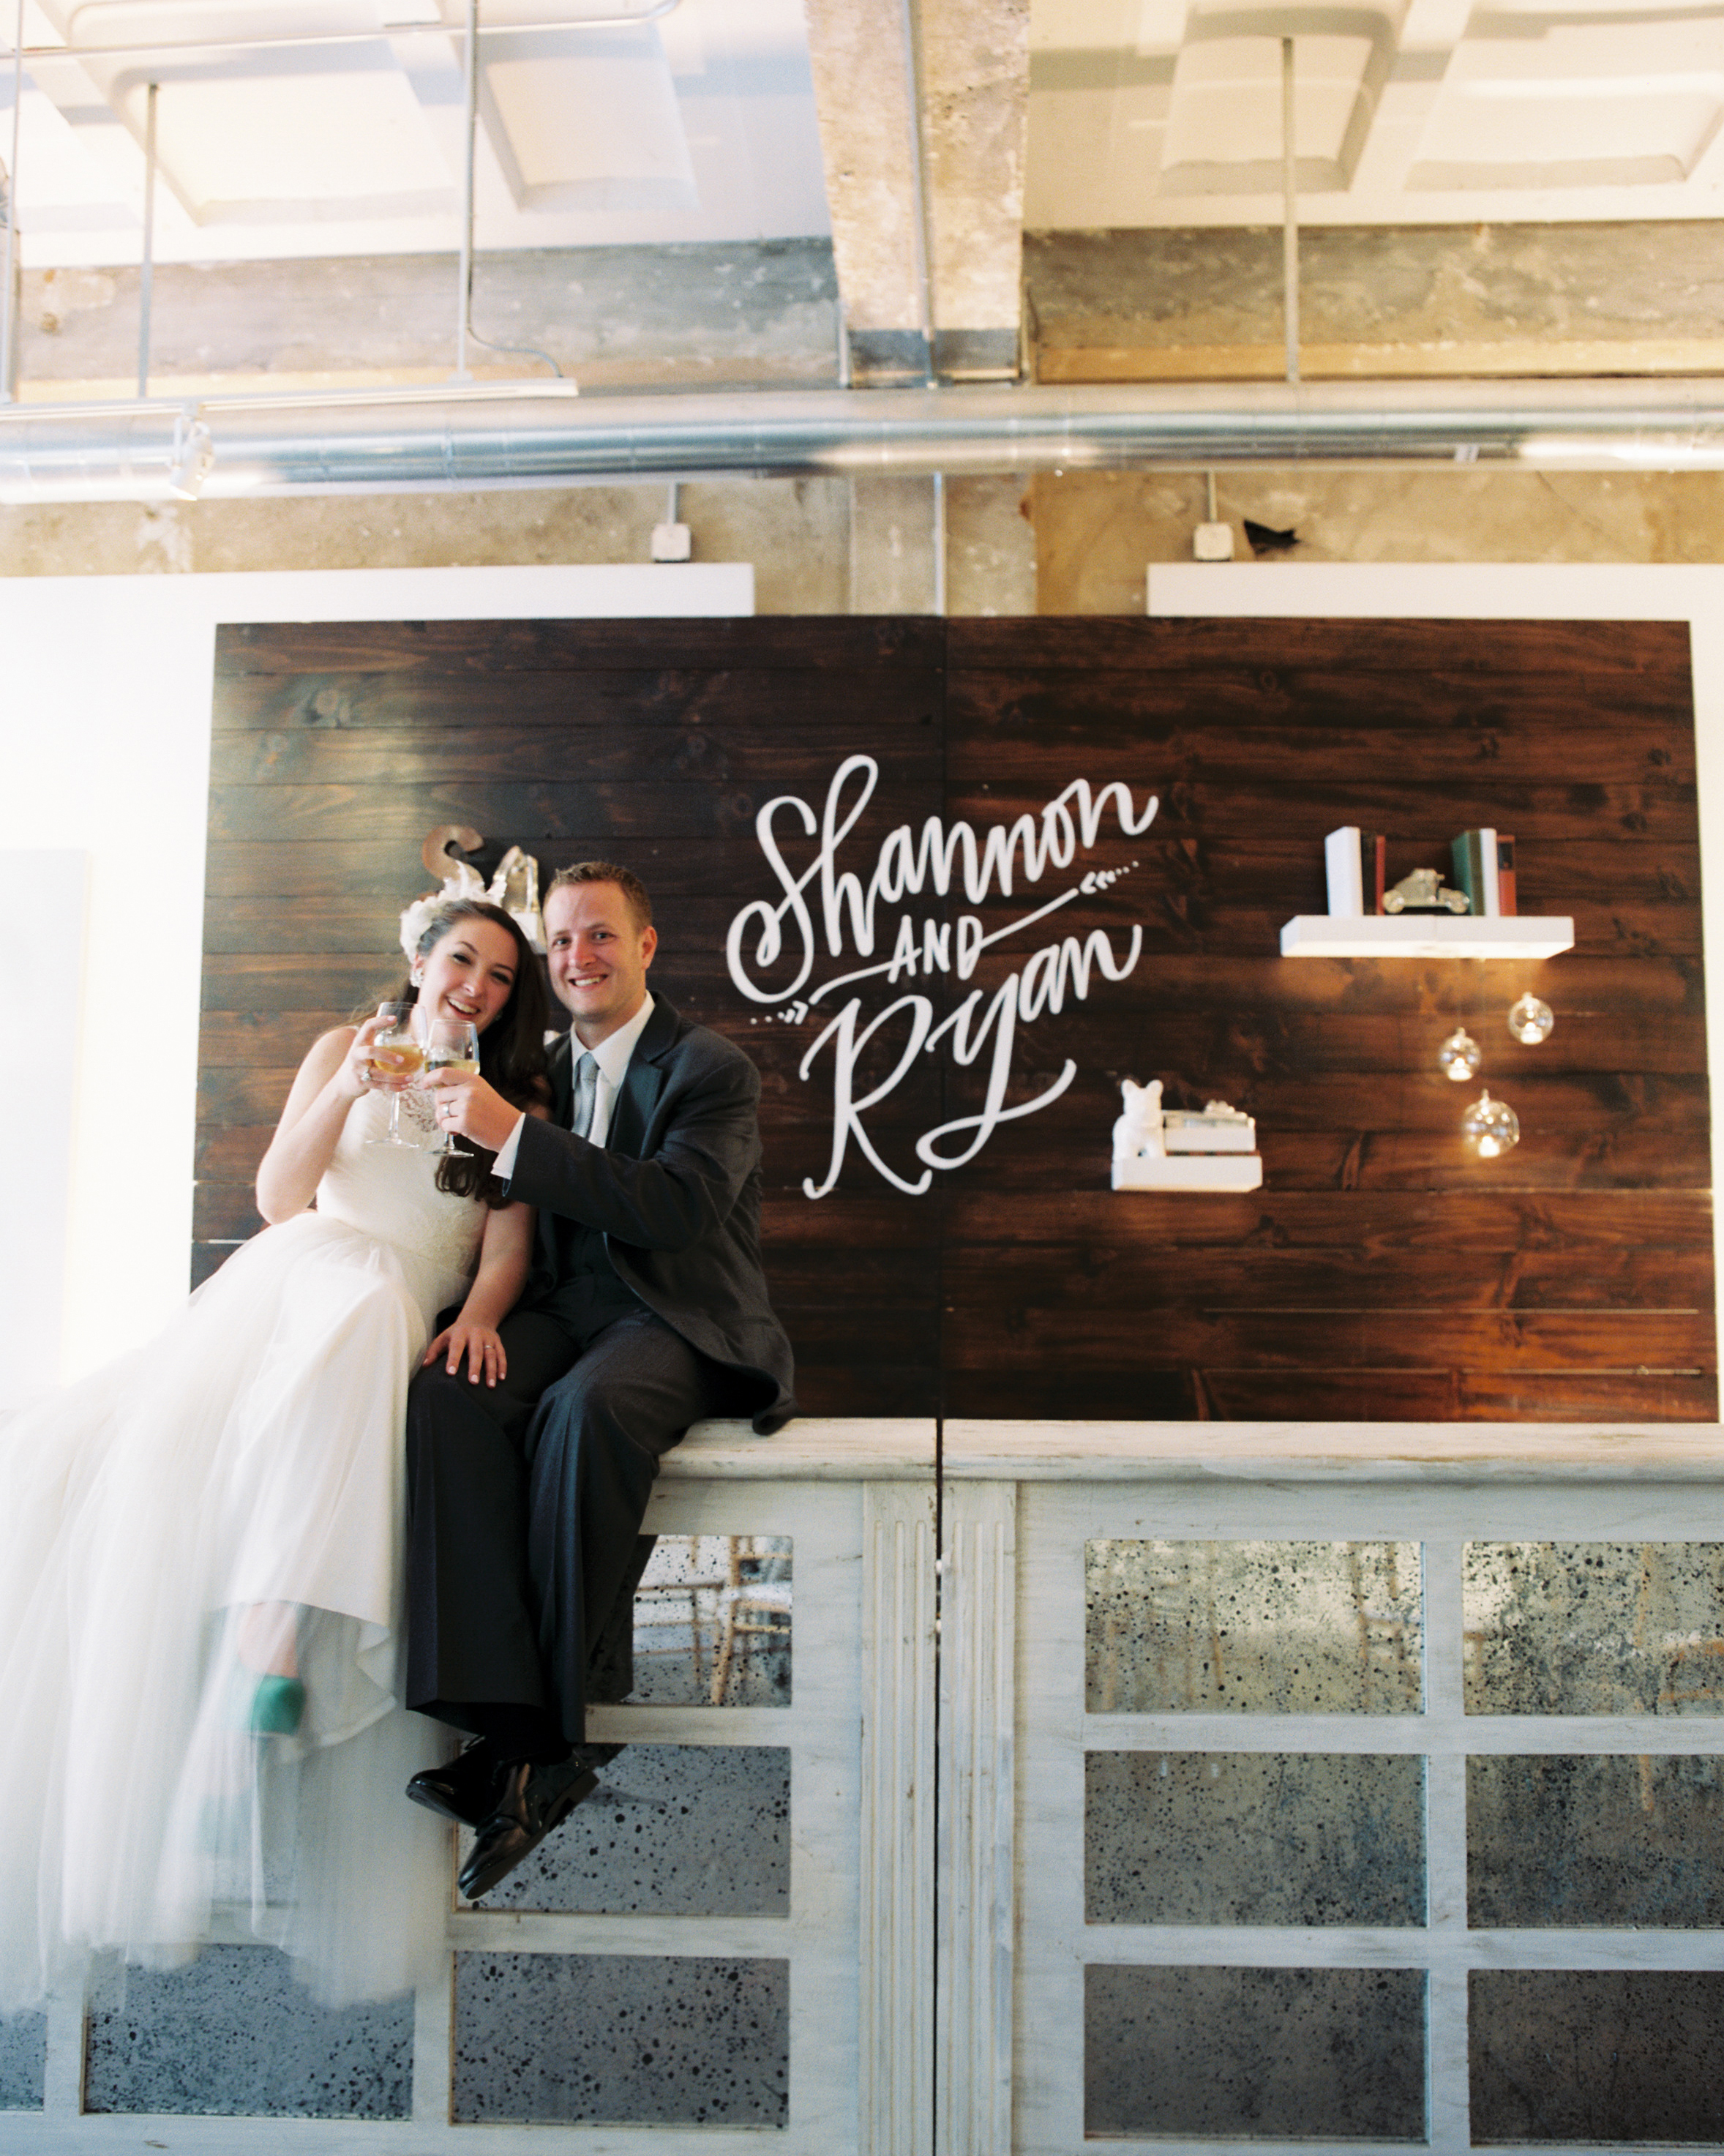 Shannon and Ryan's Art Gallery Wedding in D.C.